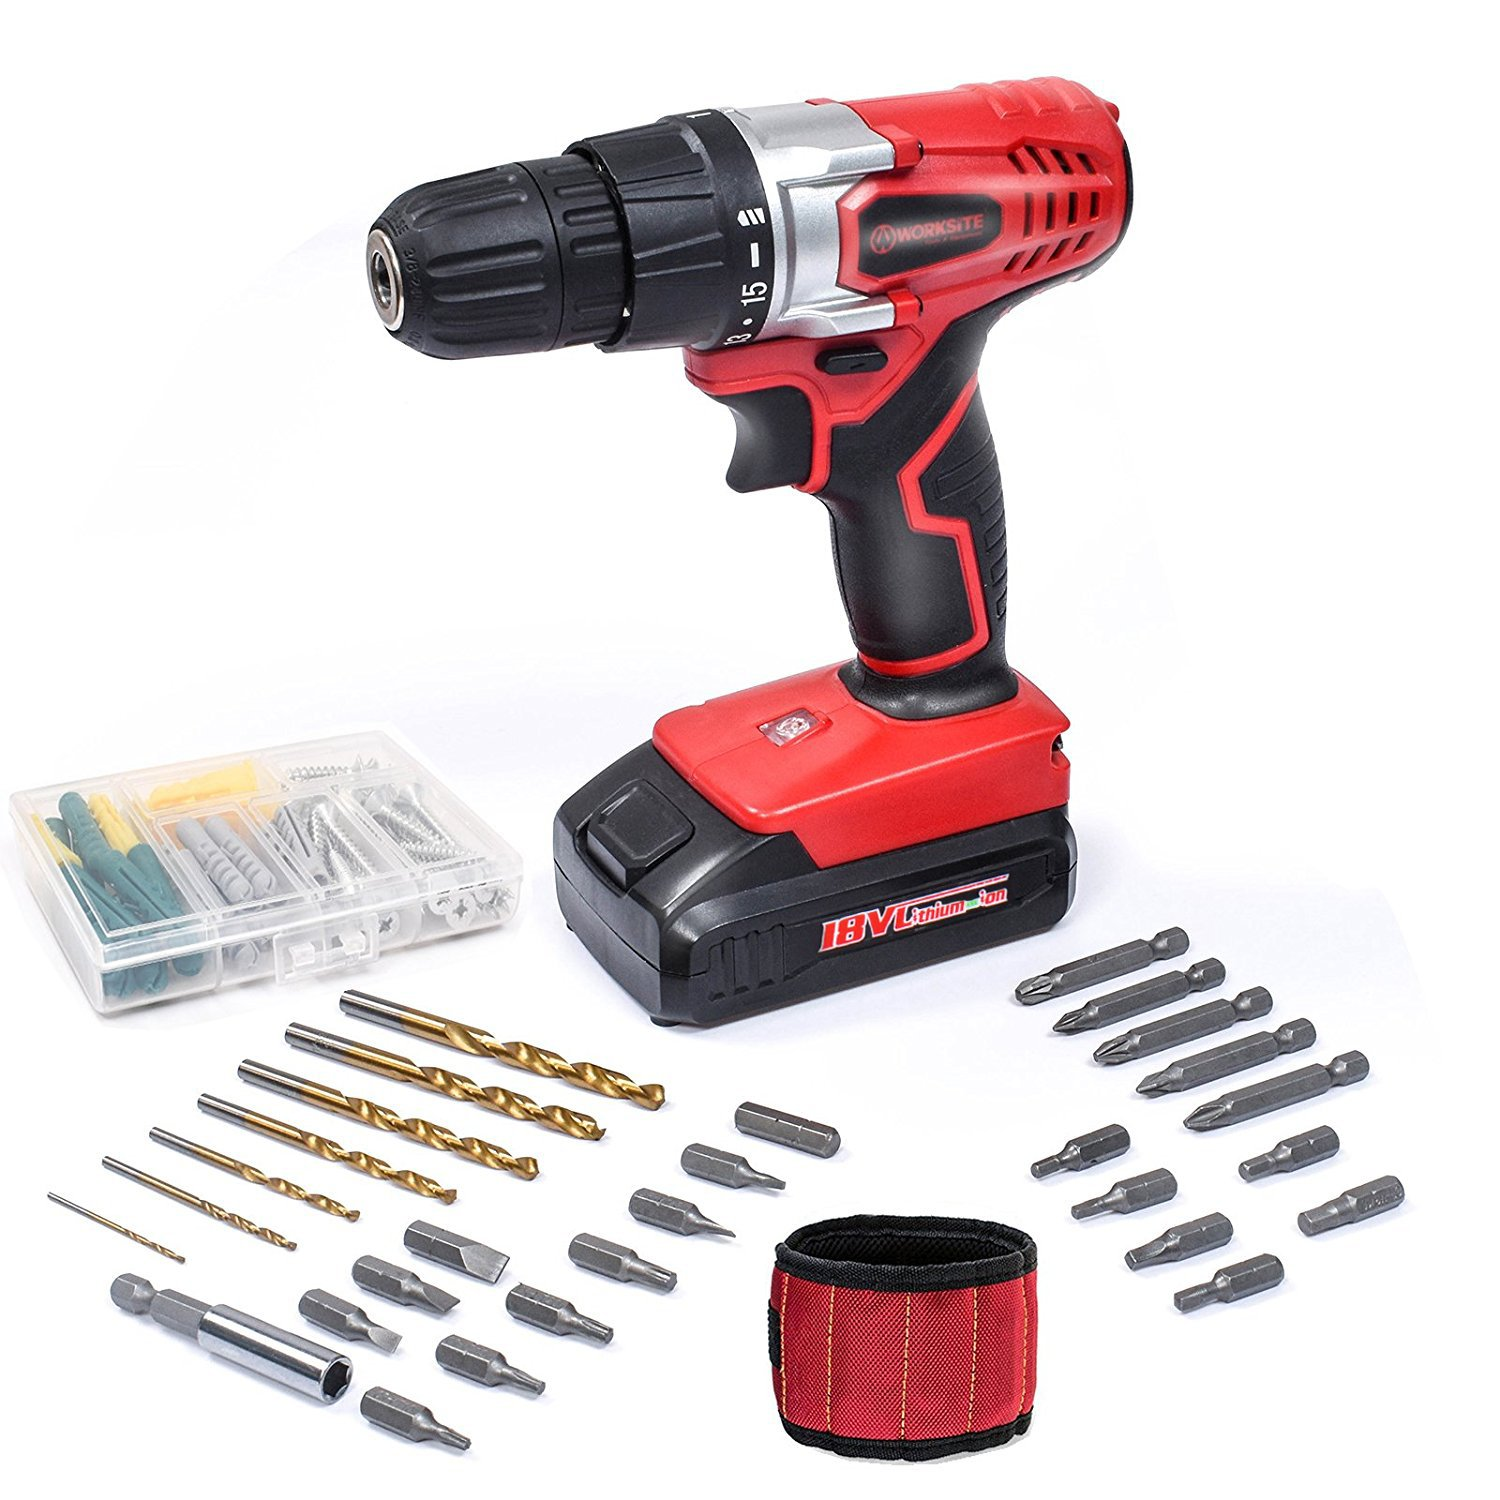 Cordless Electric Drill ScrewDriver WORKSITE CD316-20L 20V 1300mA Lithium-Ion Battery Powerful Electric Drill Driver Built-in Light with 29 Pcs Accessories Bits Set and Magnet Wristband